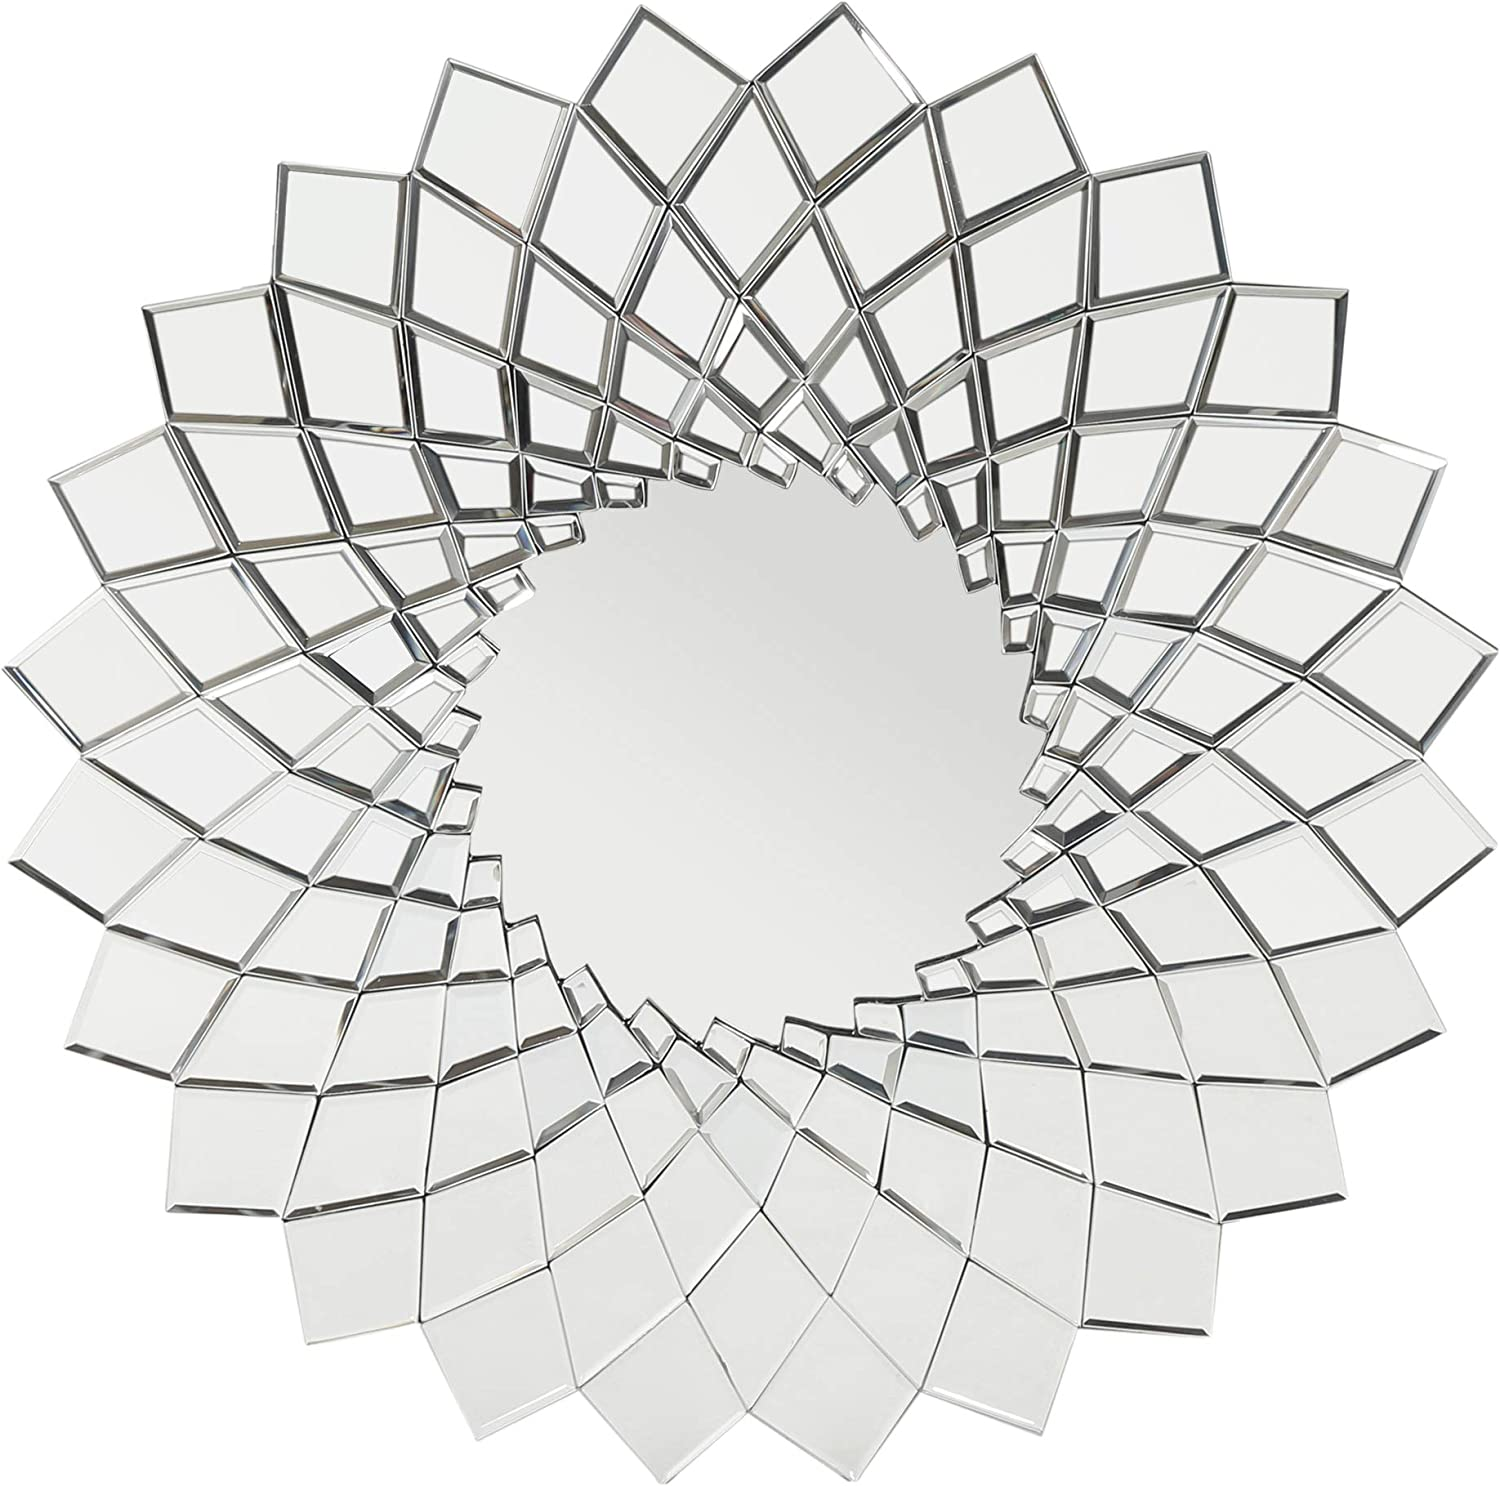 Christopher Knight Home Tzipora Glam Sunburst Wall Mirror, Clear